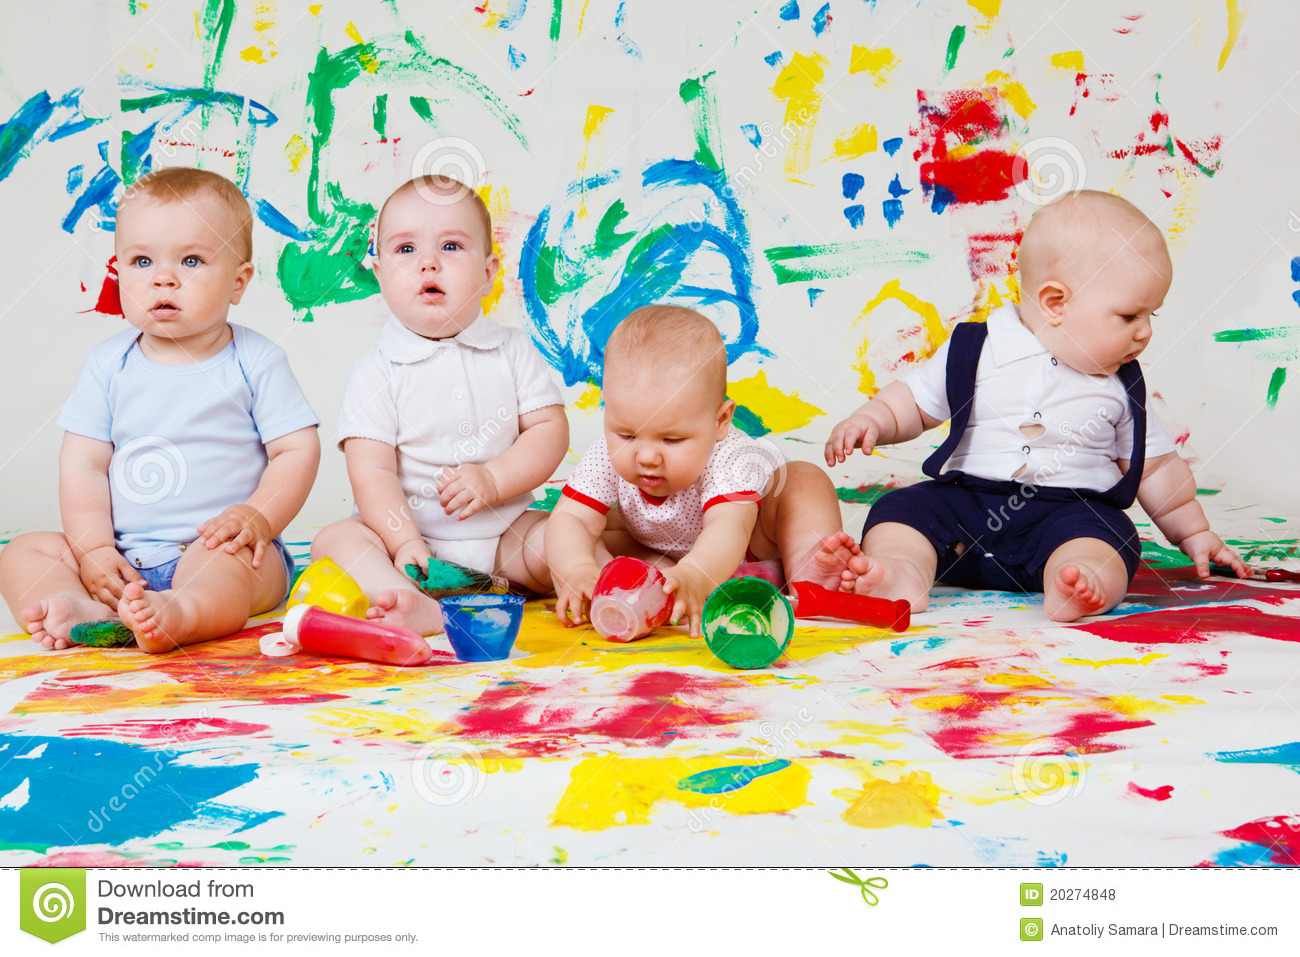 Babies Playing With Paints Royalty Free Stock Photos - Image: 20274848